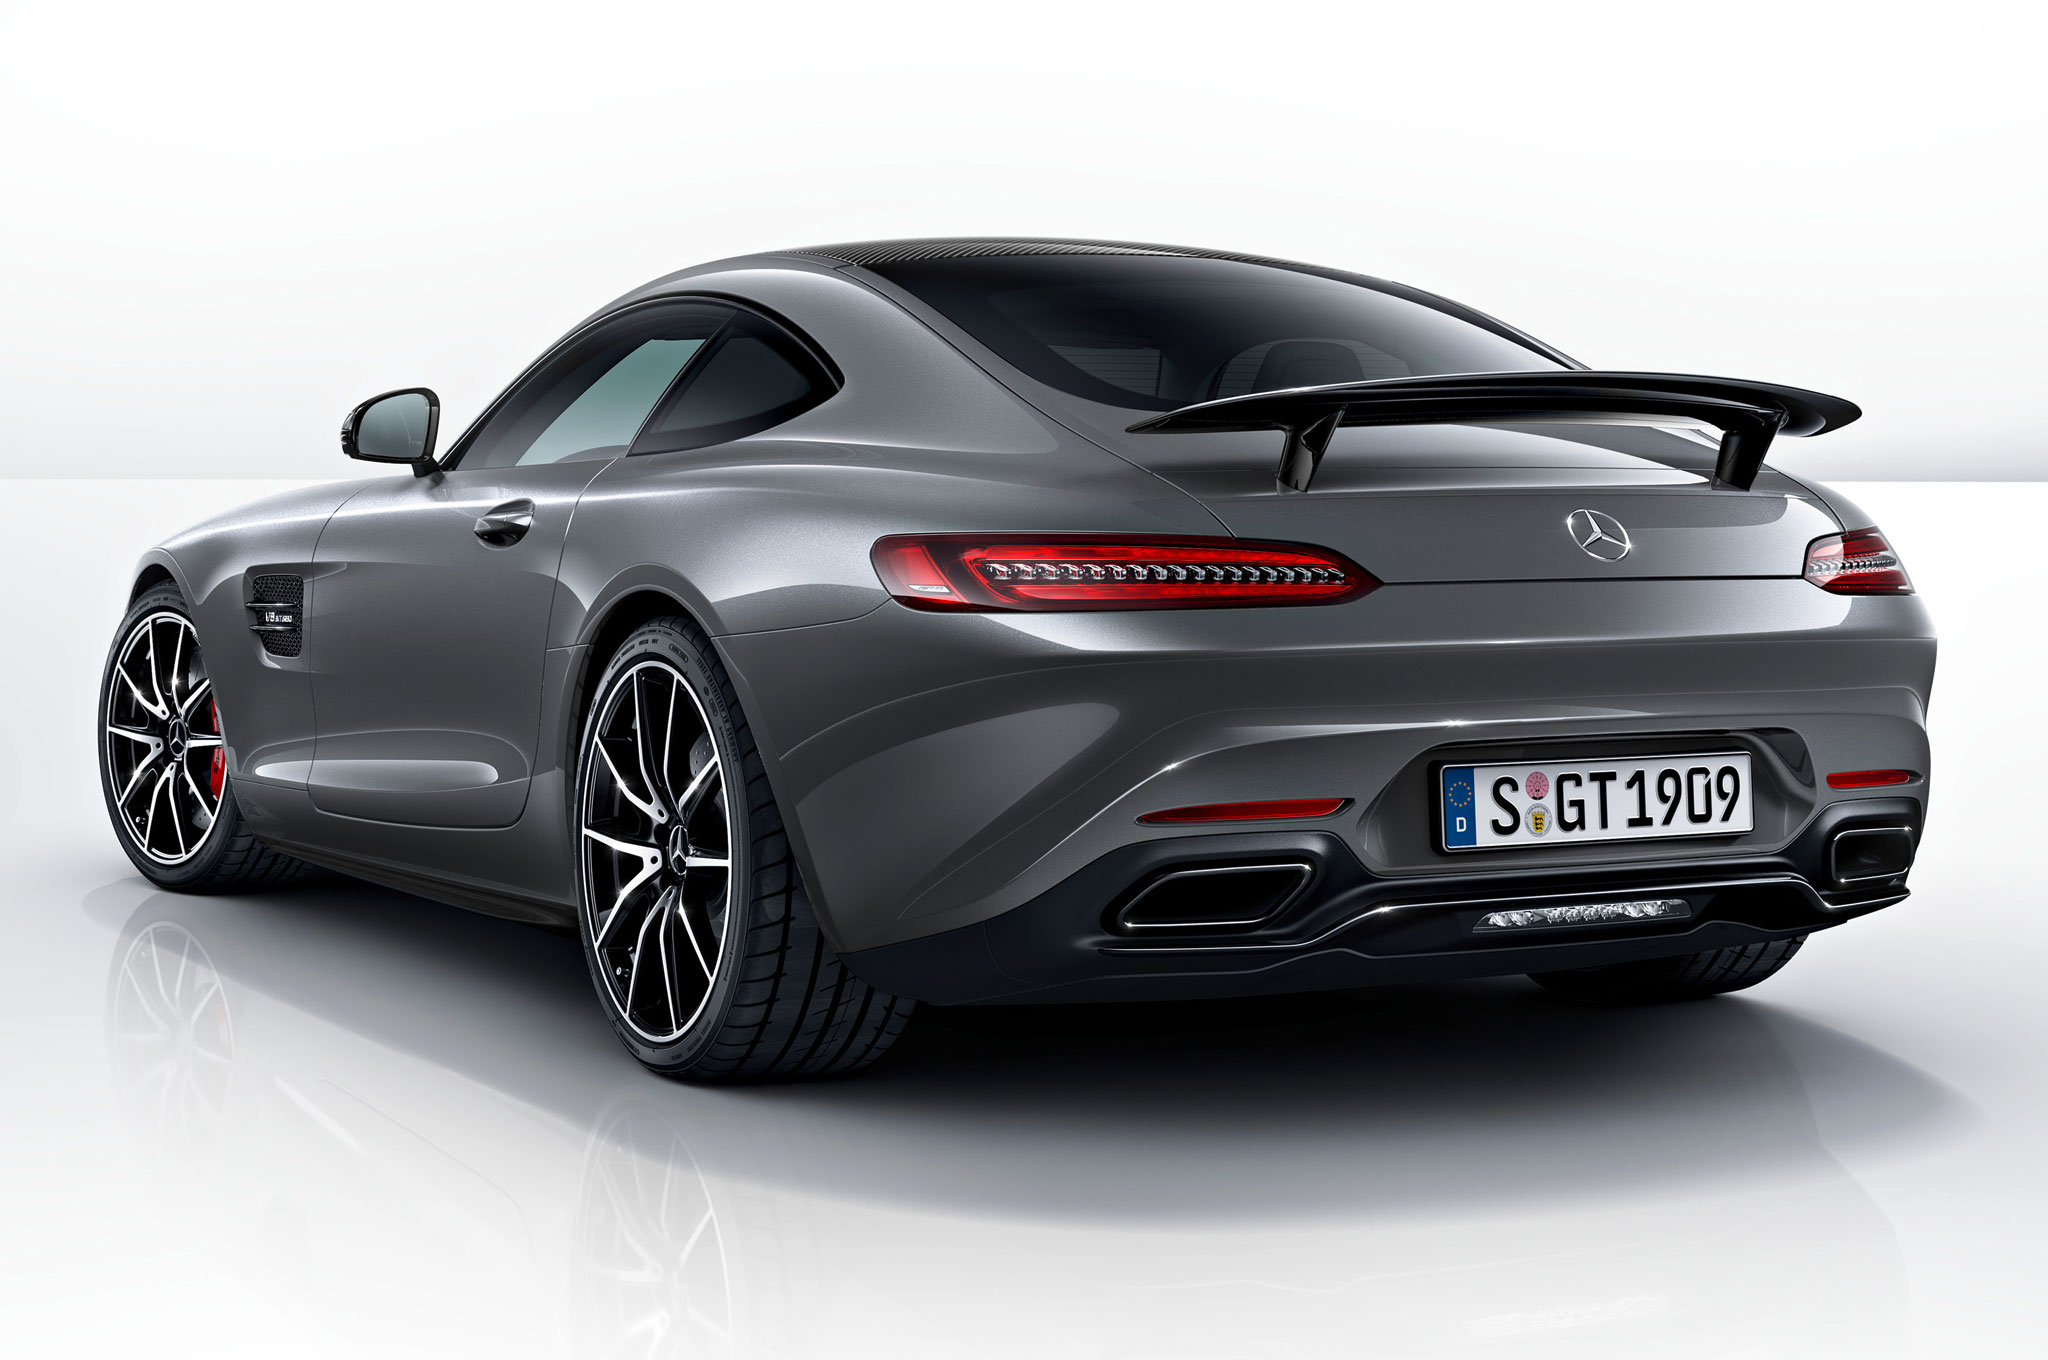 2016 MercedesAMG GT Kicks Off with Edition 1 Model